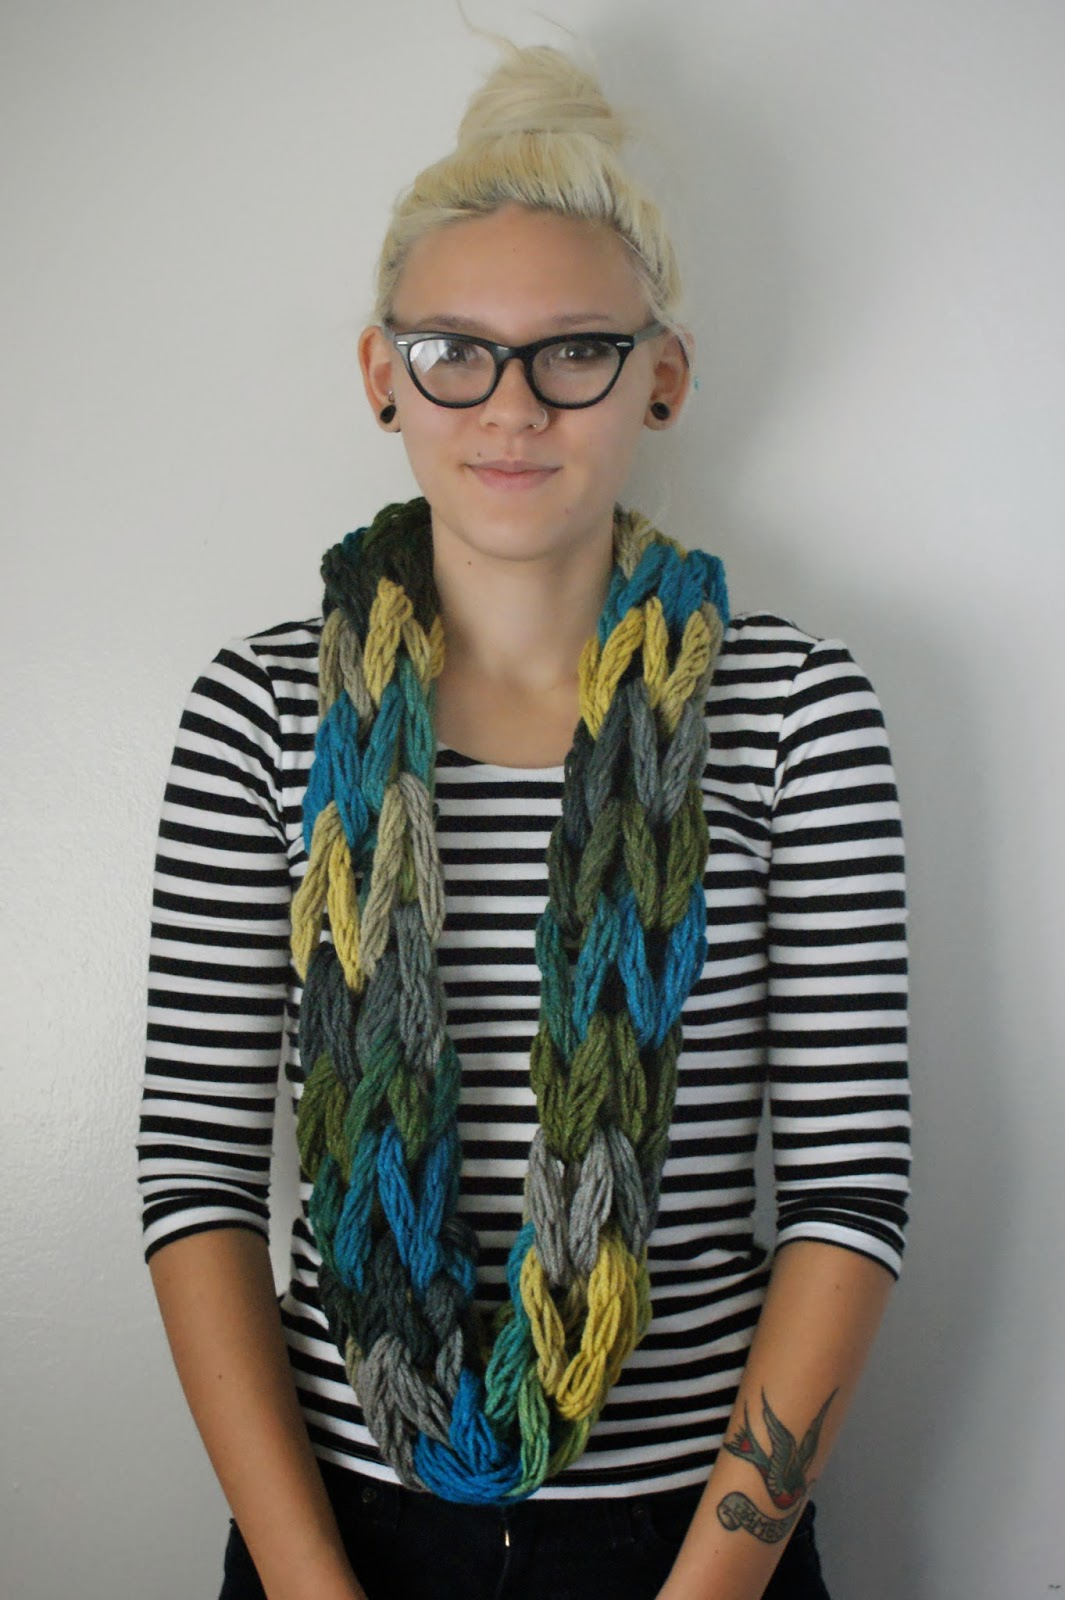 Knitting Scarf Tutorial : Arm knitting scarf patterns a